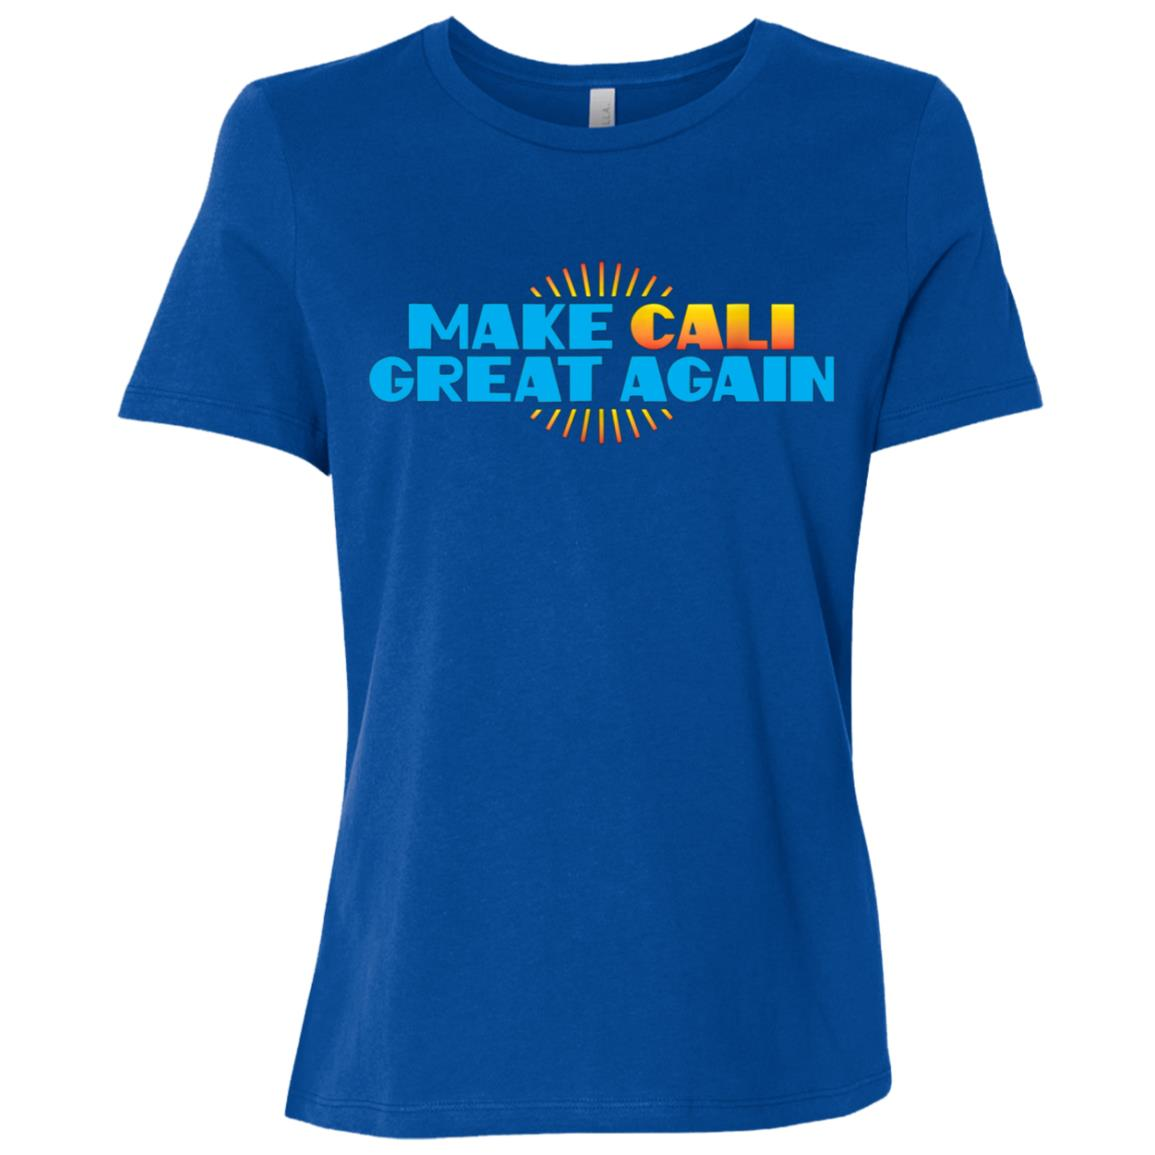 Make Cali Great Again US Event Rally Protest March Women Short Sleeve T-Shirt